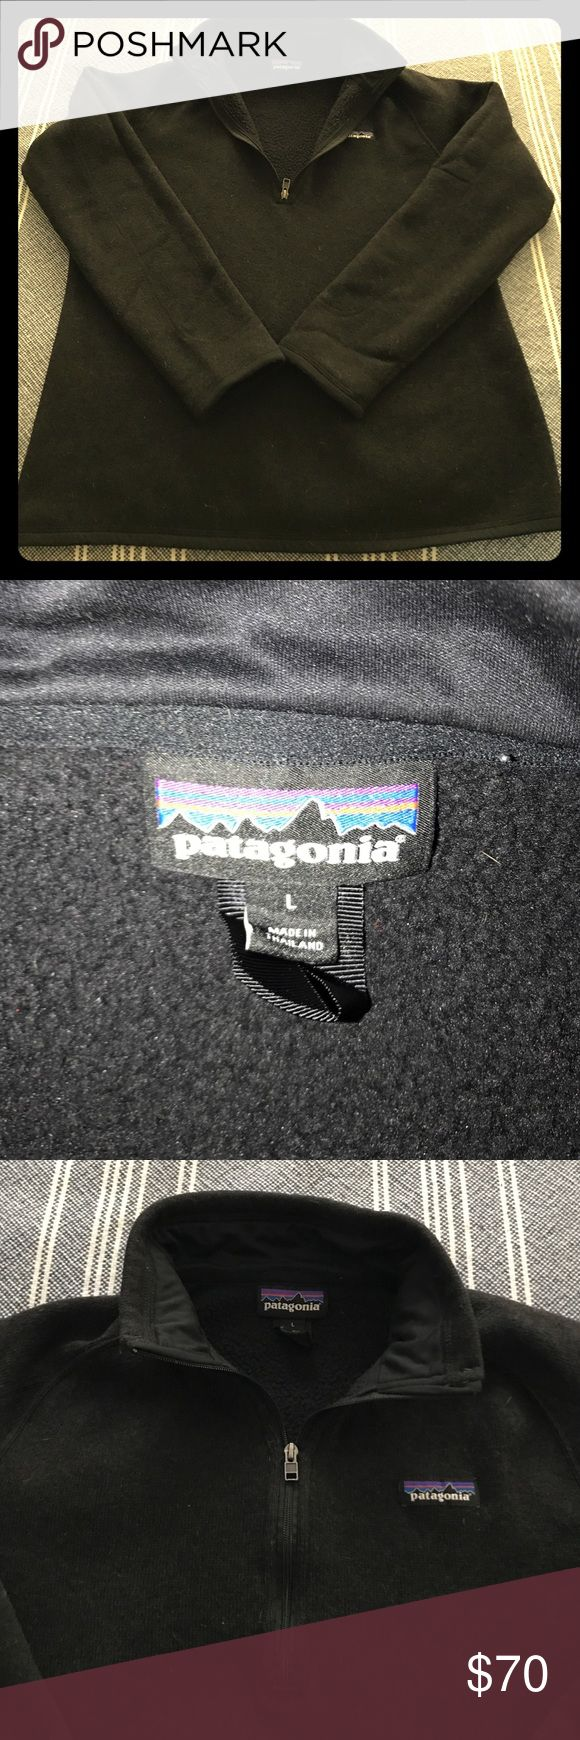 ⭐️PATAGONIA LARGE black half zip pullover⭐️ Patagonia 'better sweater' black half zip pull over size LARGE for sale. This is a little off black I would say but so so cute and WARM! I purchased from Nordstrom two months ago but want a different color. This pullover is in great condition and gently used. Ask any questions you want! PLEASE be aware price is firm and any low offers will not be addressed. Thank you! 😃😃 Patagonia Tops Sweatshirts & Hoodies